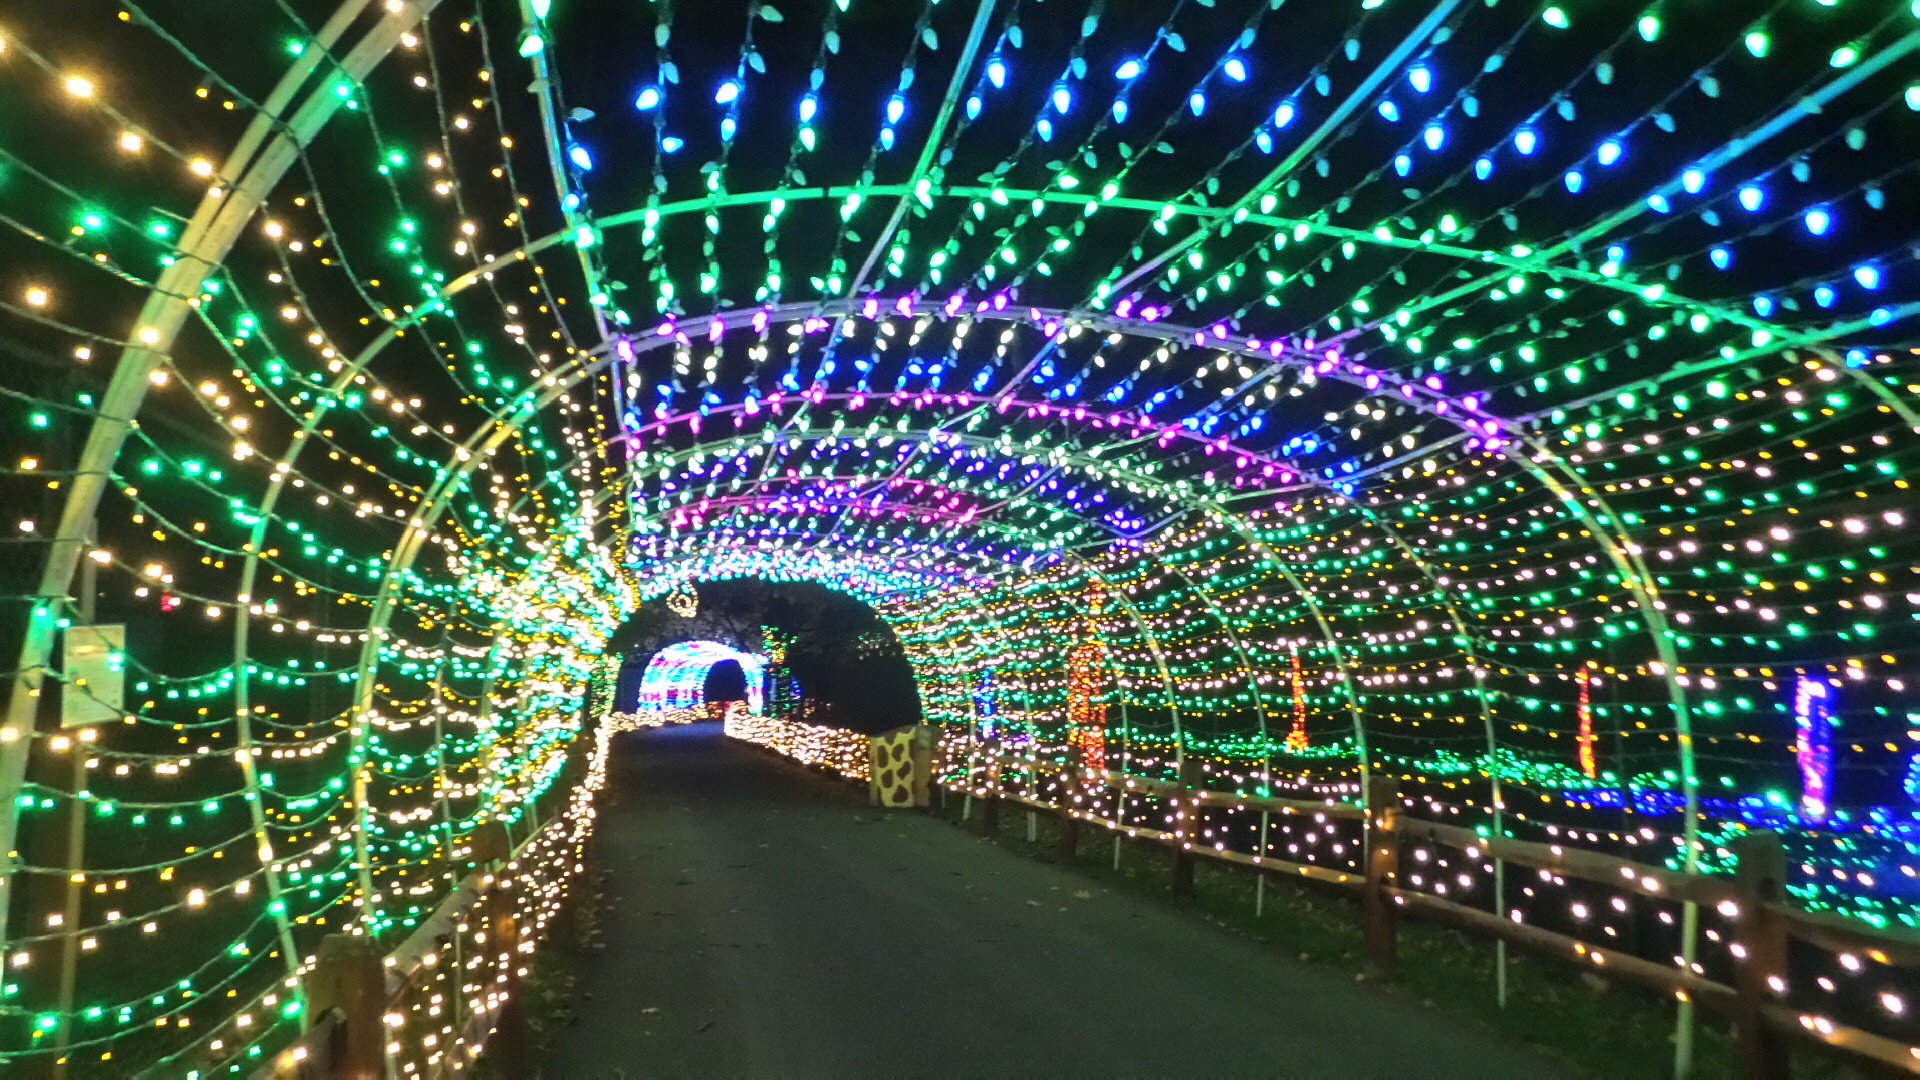 Lehigh Valley Zoo's Winter Lights Spectacular 2020